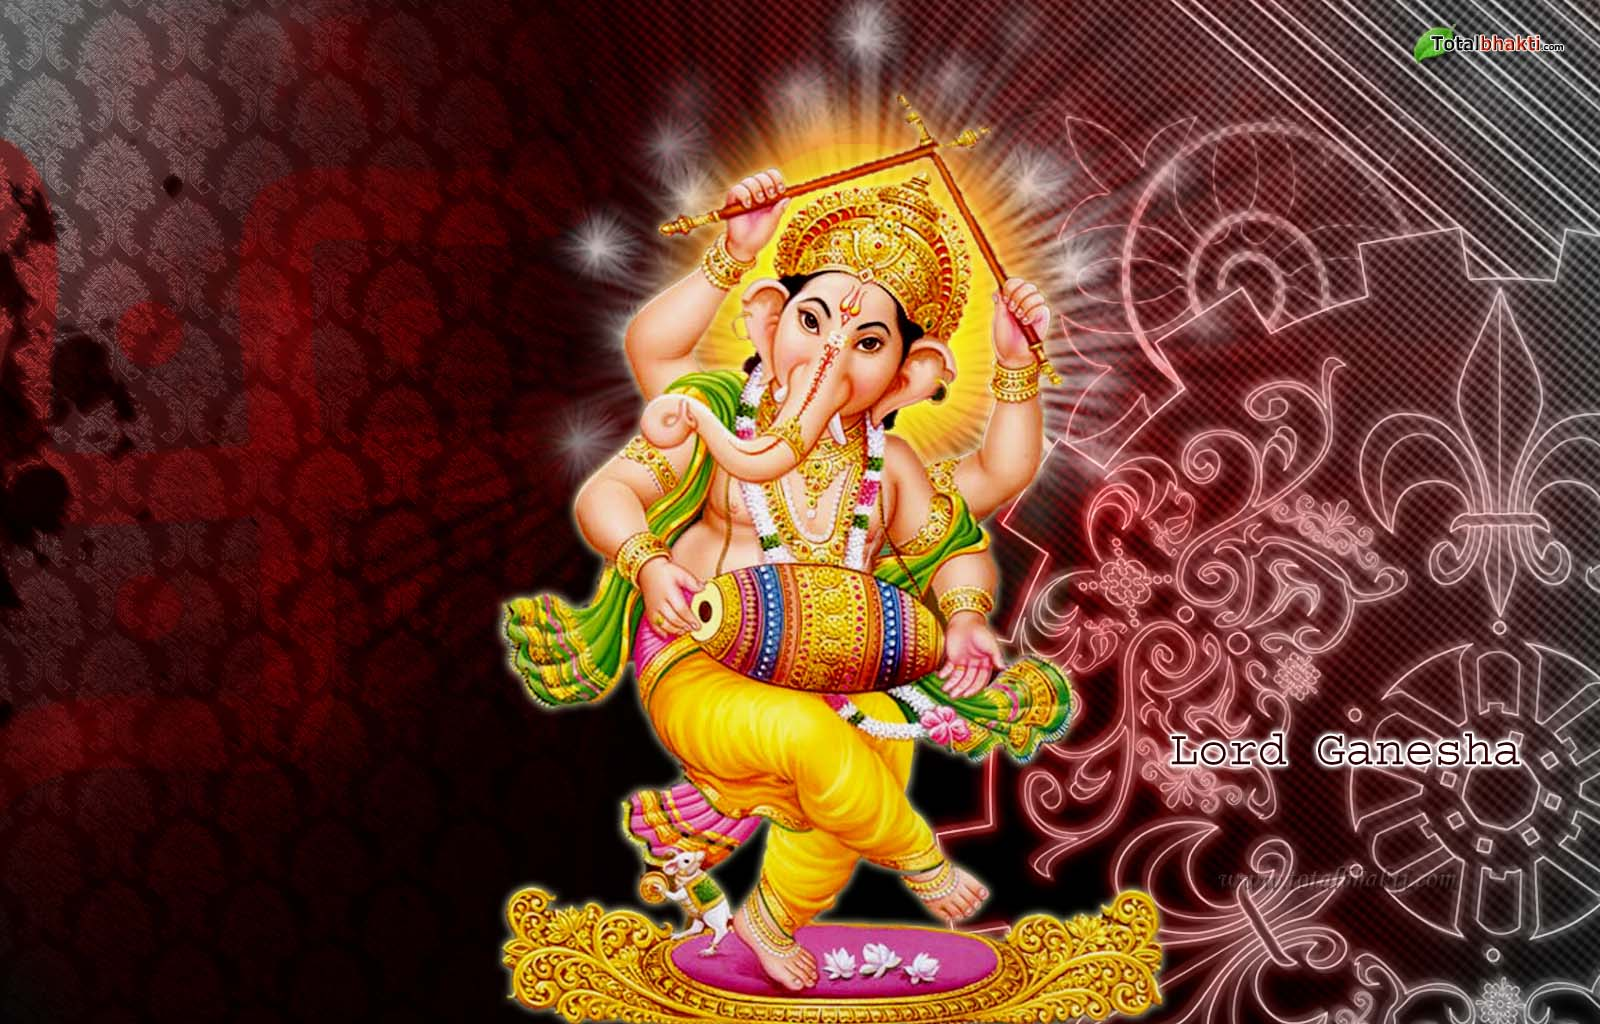 Wallpaper Gallery: Lord Ganesha Wallpaper